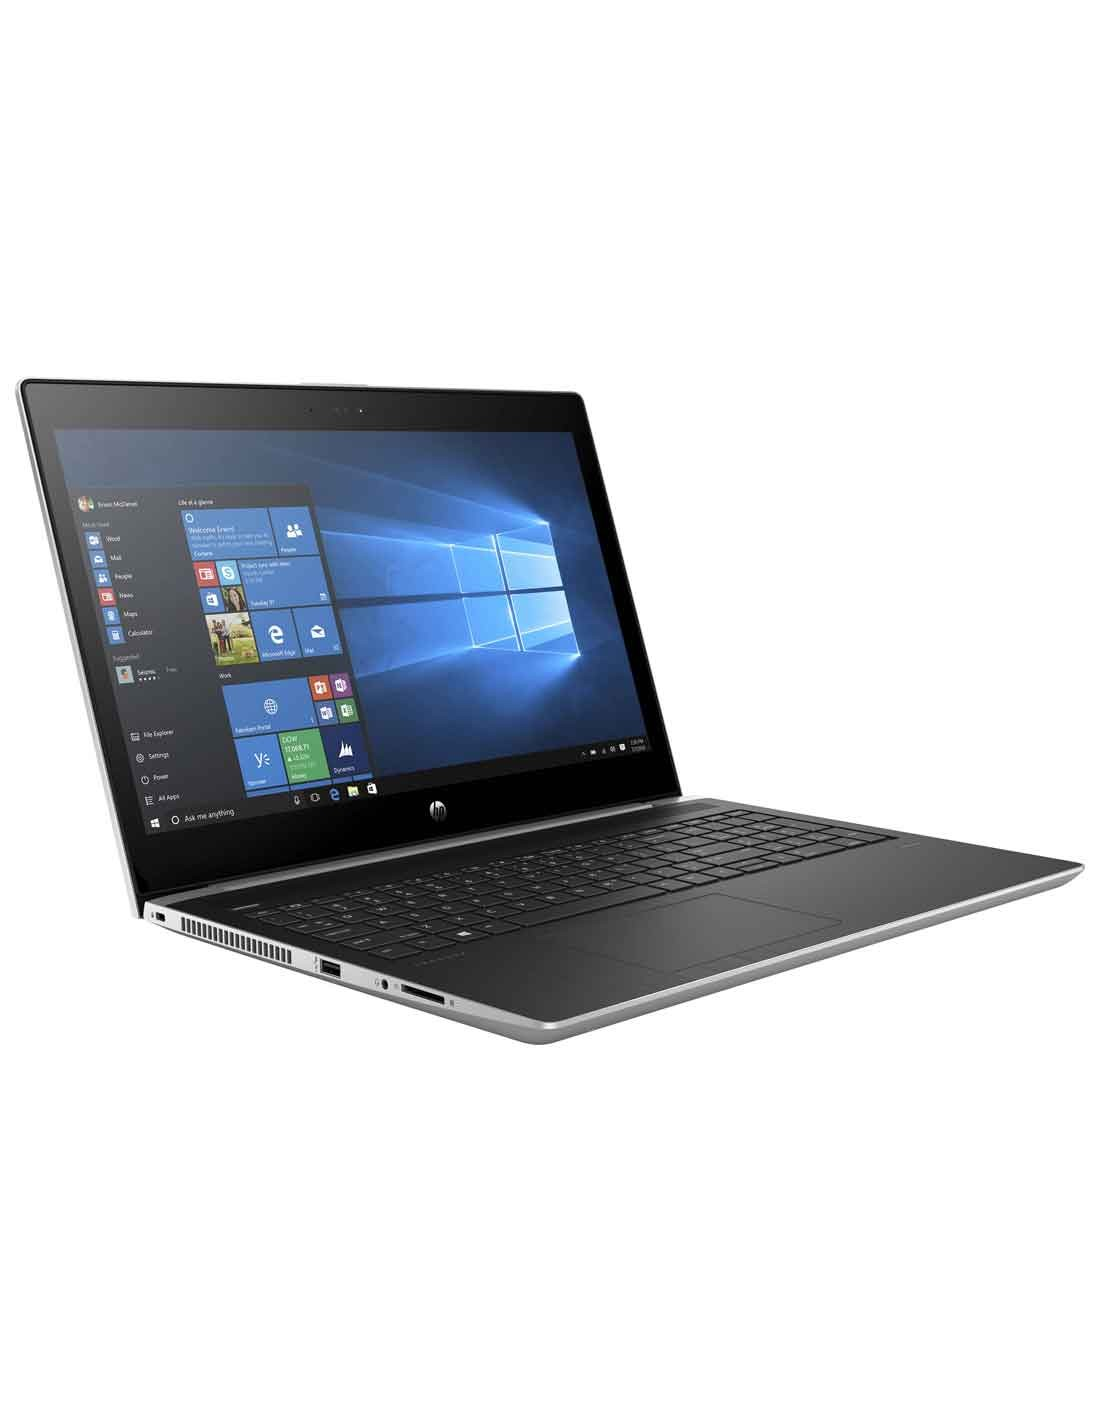 HP ProBook 450 G5 Notebook Core i7 images and photos